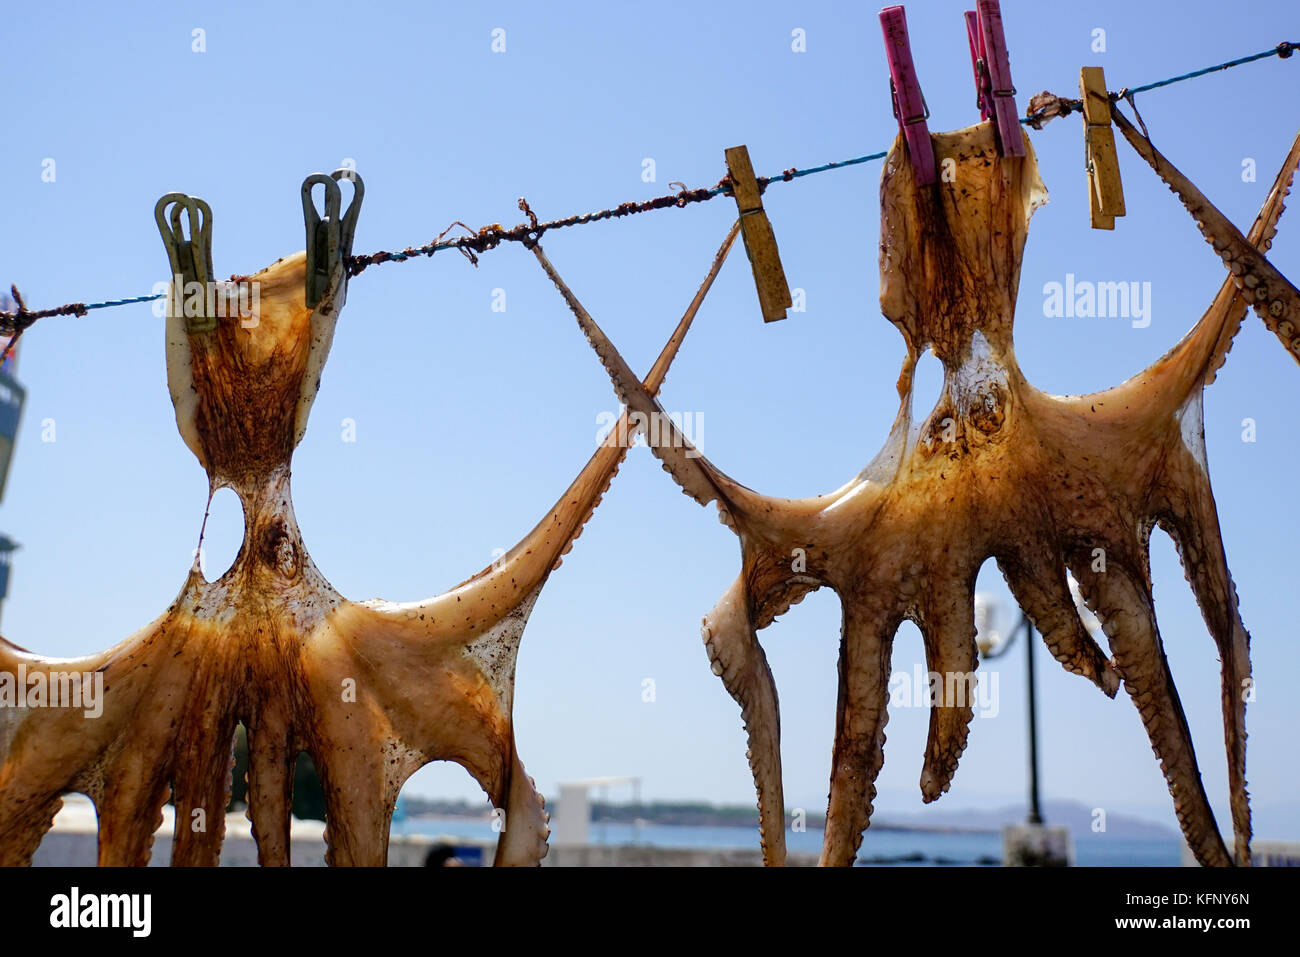 Octopus drying in the sun on a line. Photographed in Chania, Crete, Greece - Stock Image